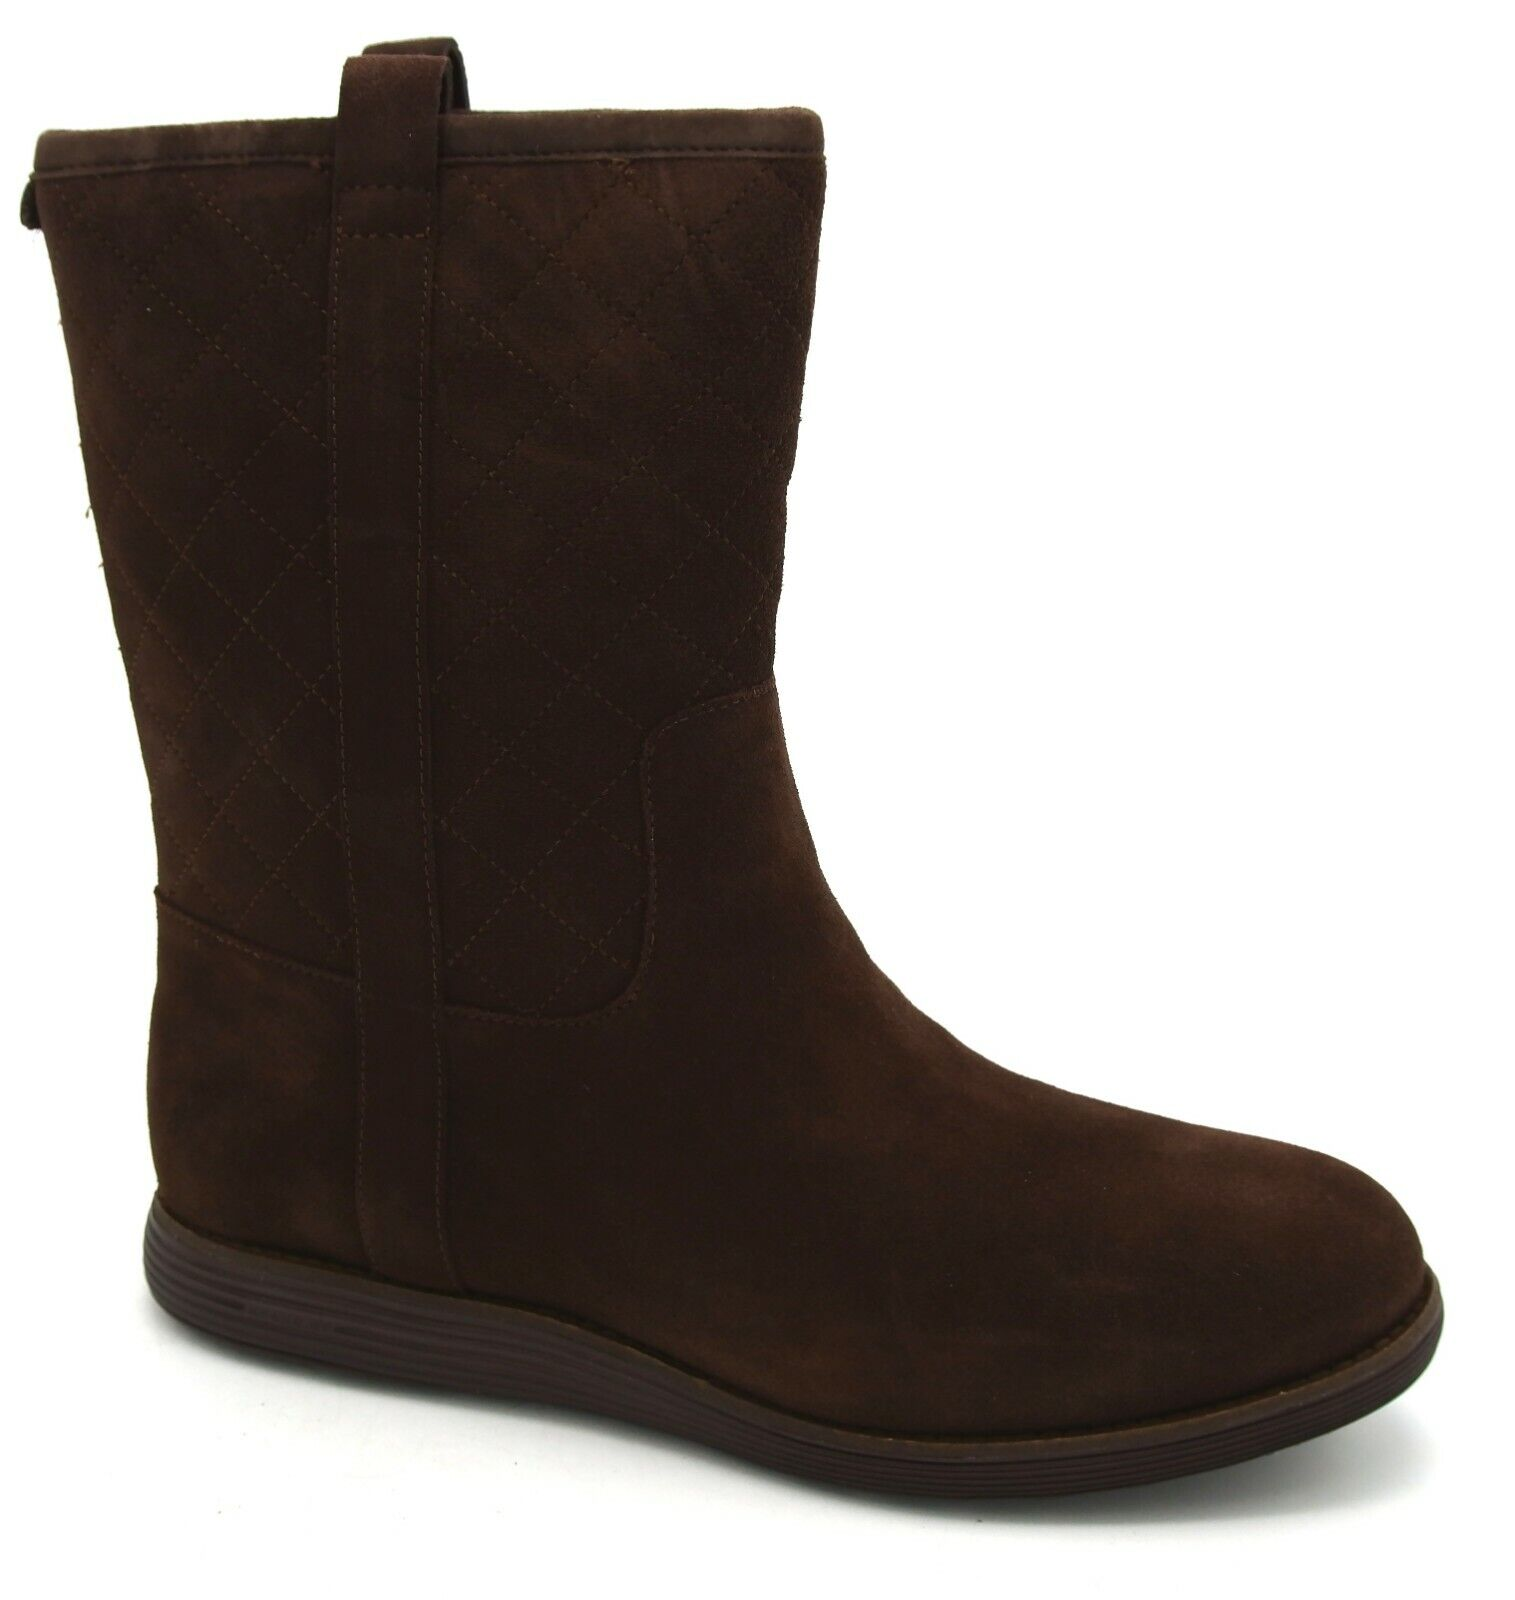 J7801 New Women's Cole Haan Roper Waterproof Chestnut Boot 10 B